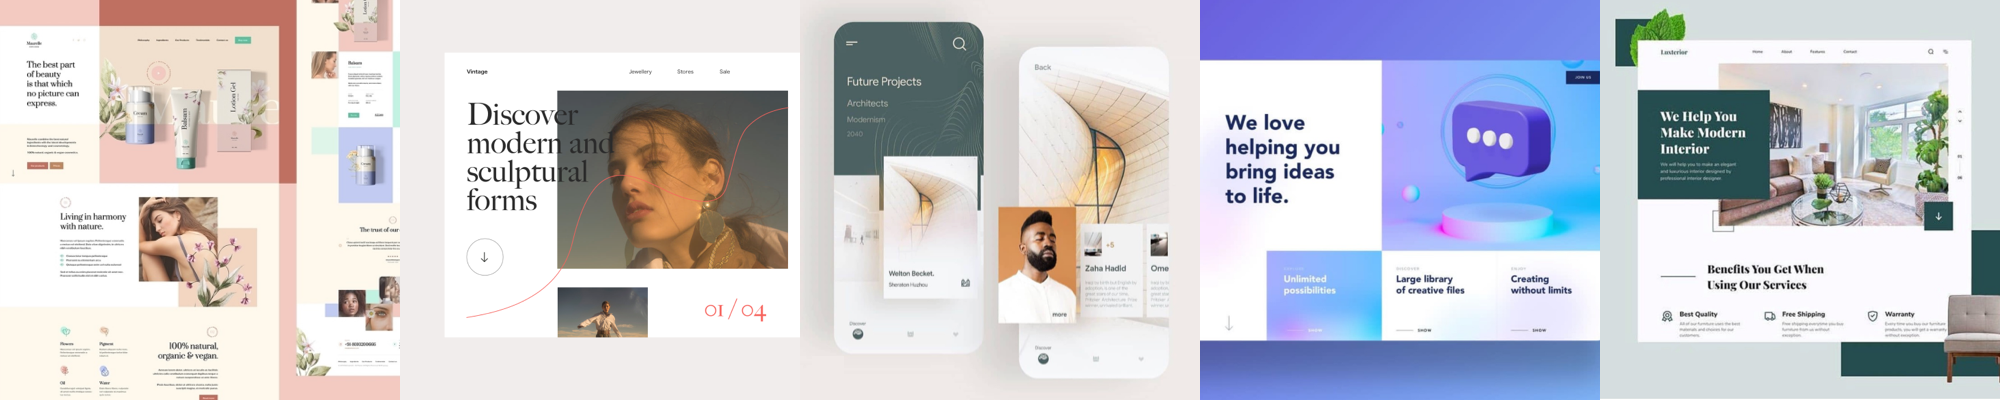 Examples of geometric structure in UI